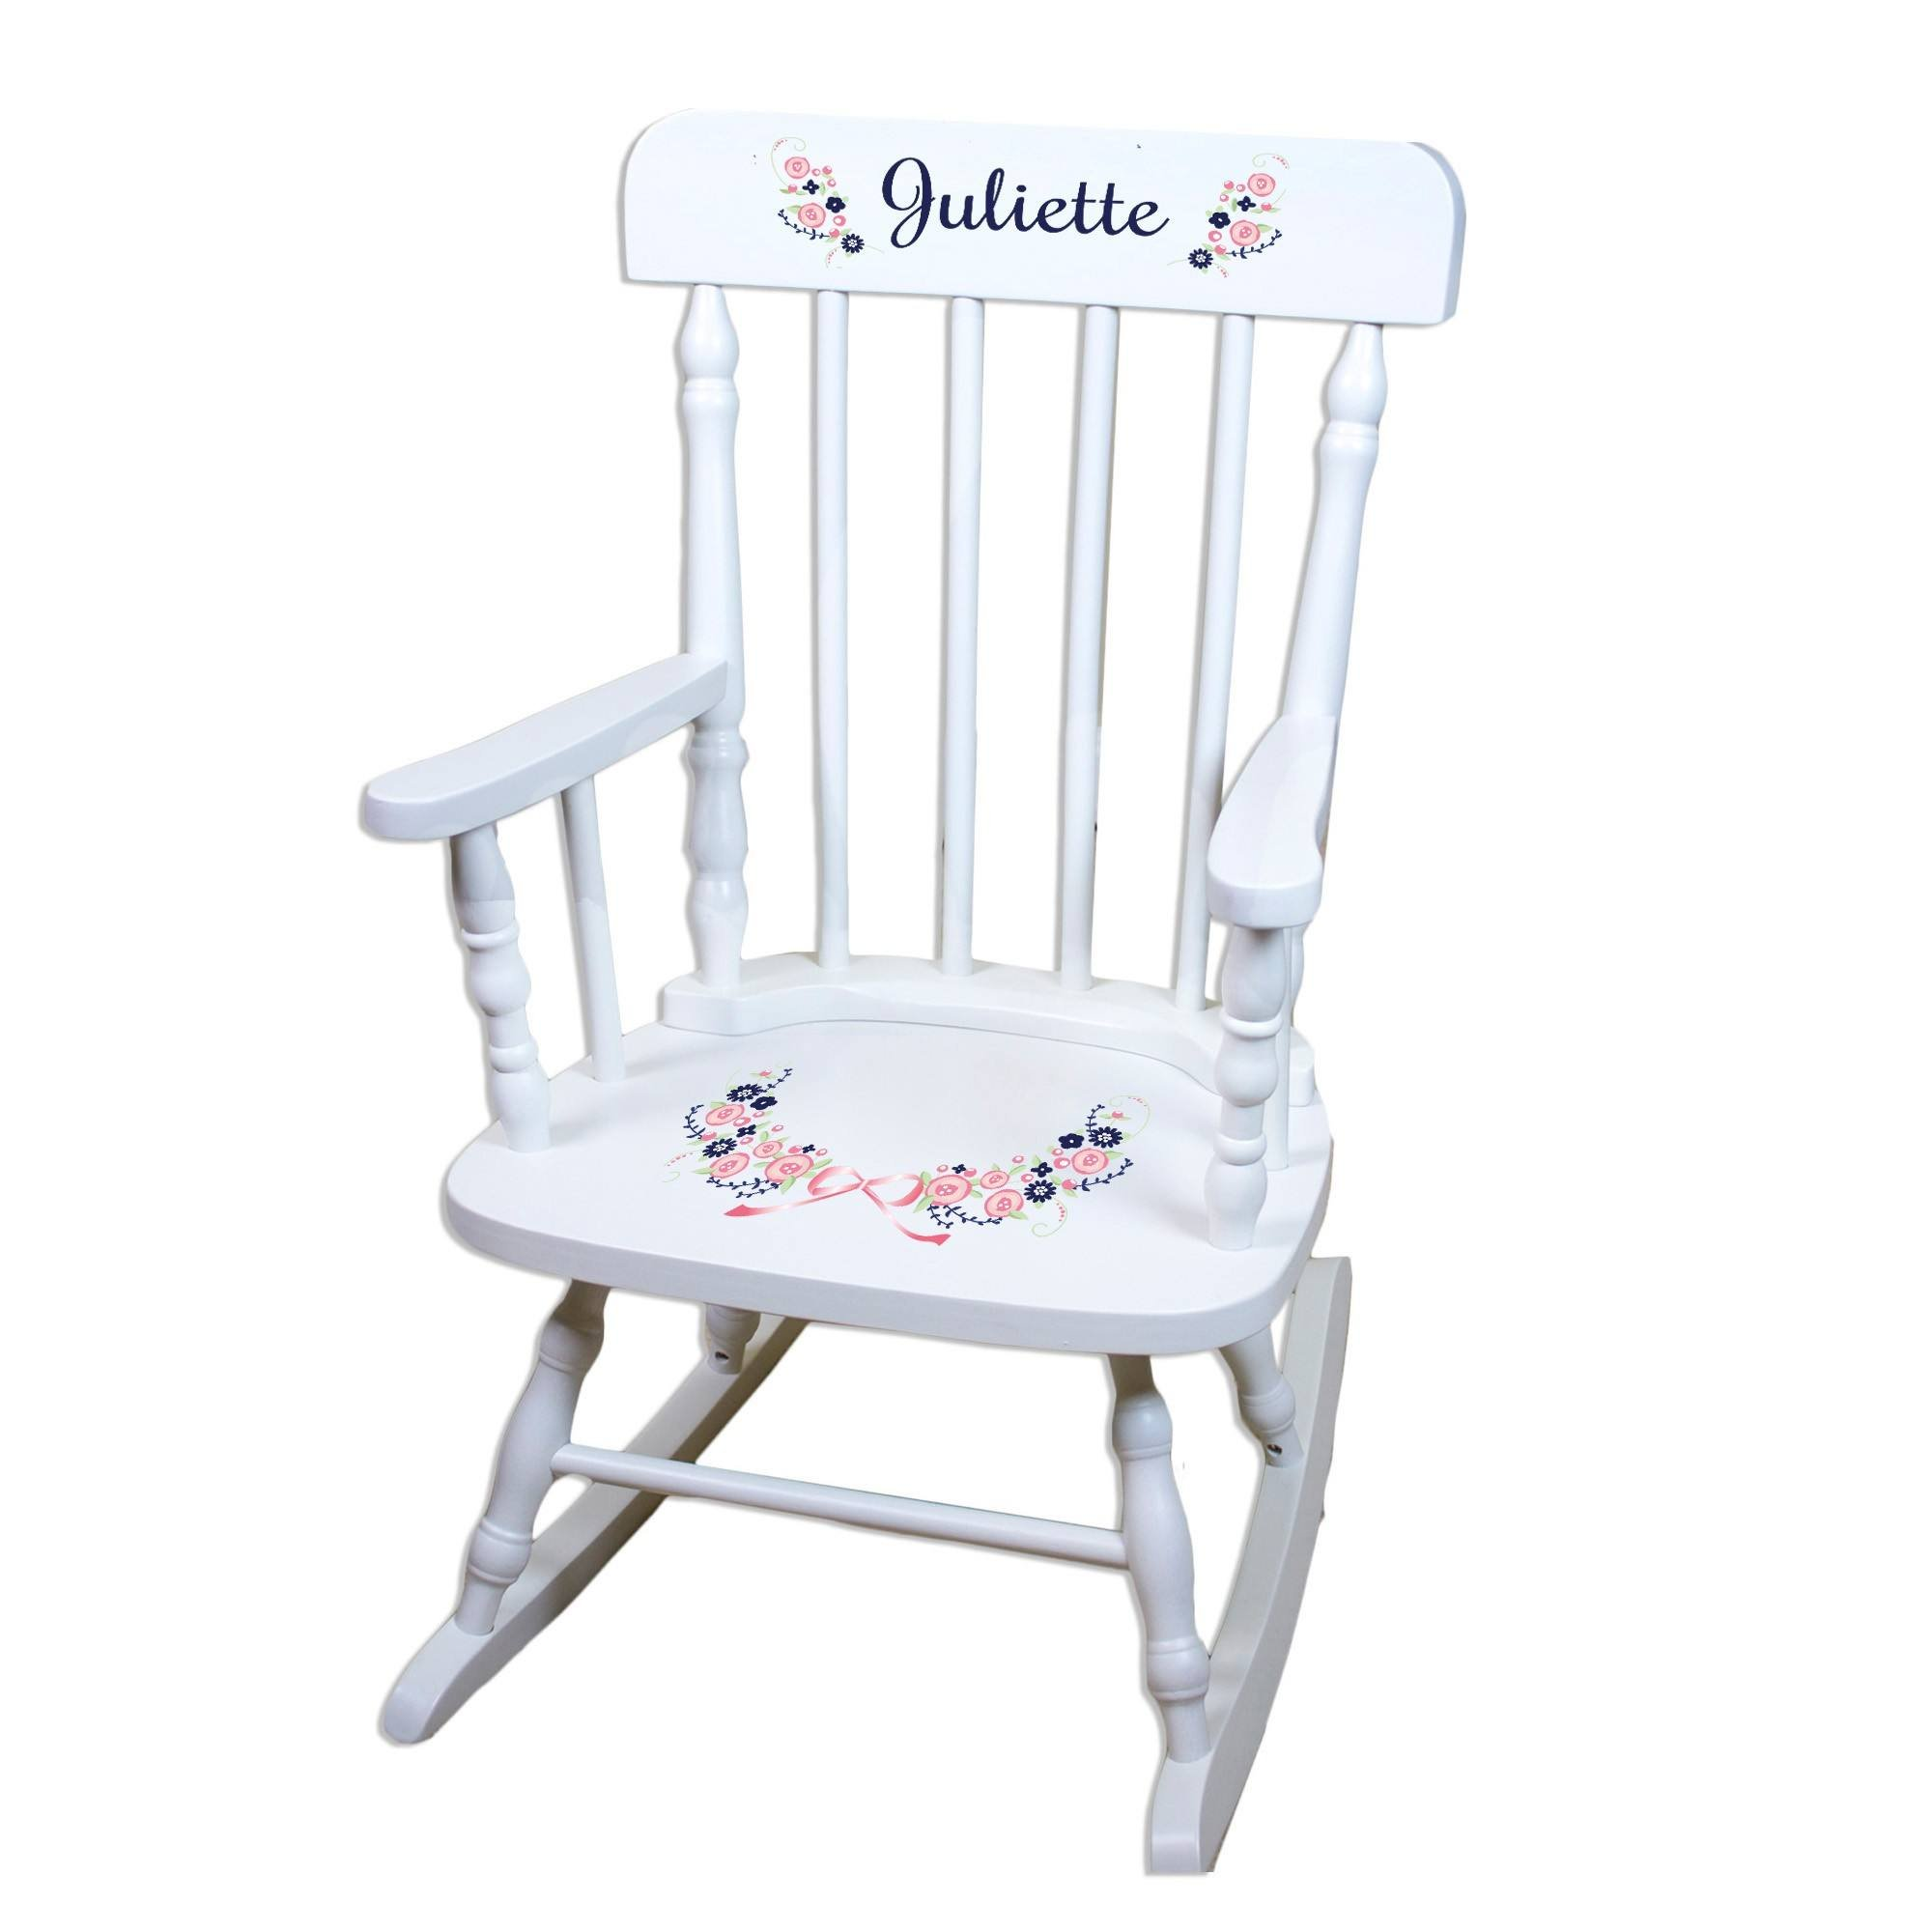 MyBambino Personalized Navy Pink Floral Garland White Wooden Childrens Rocking Chair